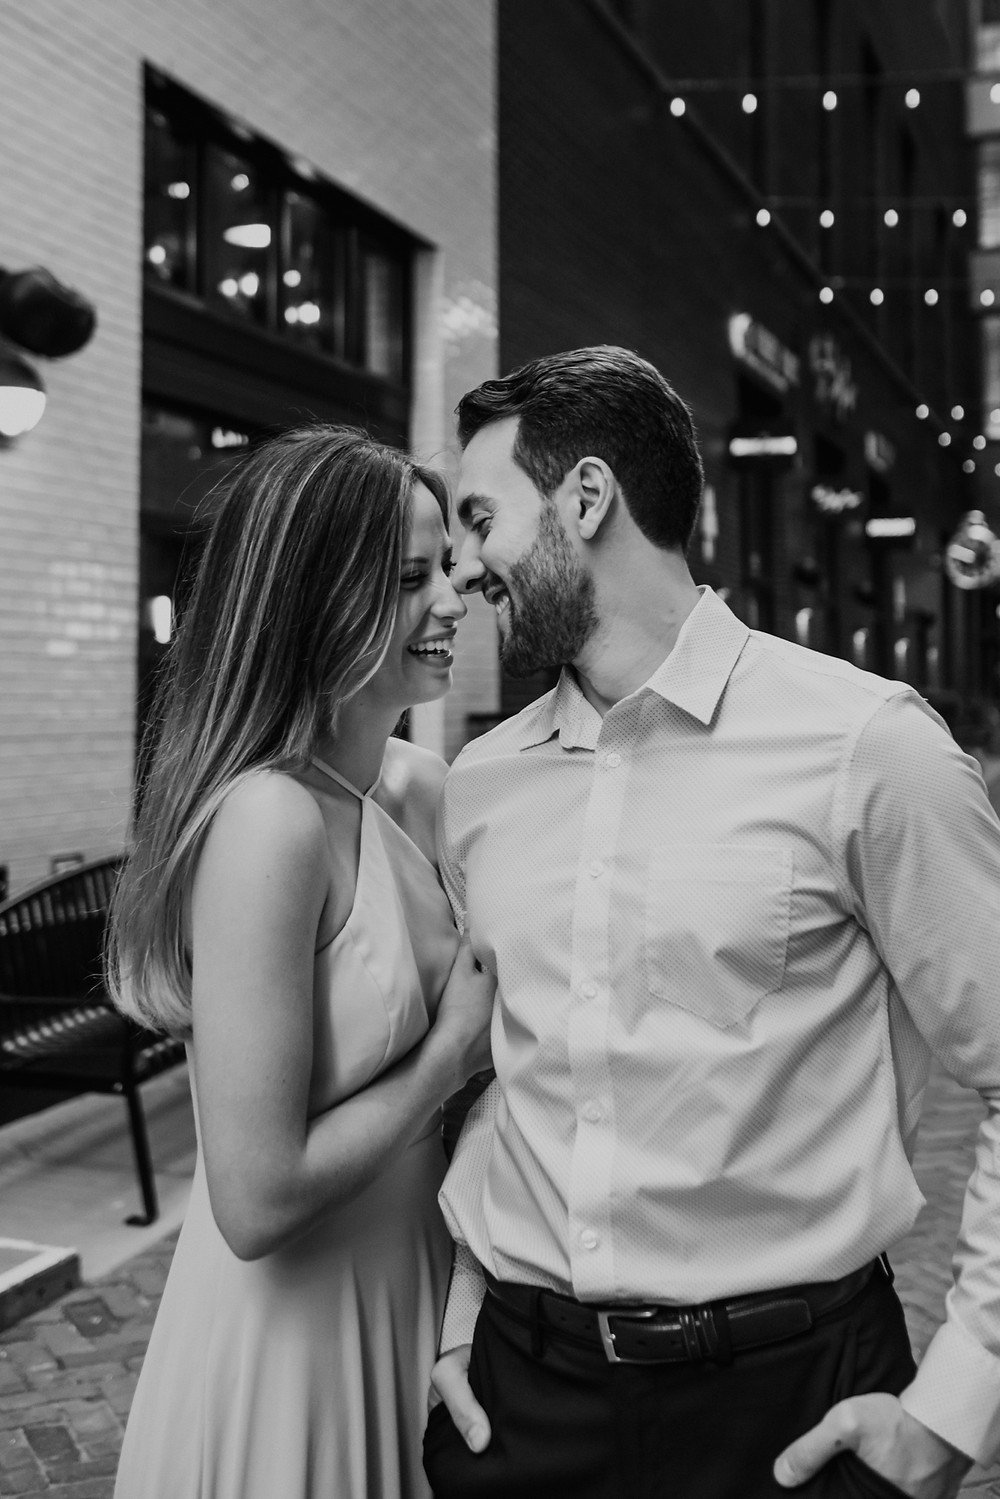 Engagement session in downtown Detroit. Photographed by Nicole Leanne Photography.